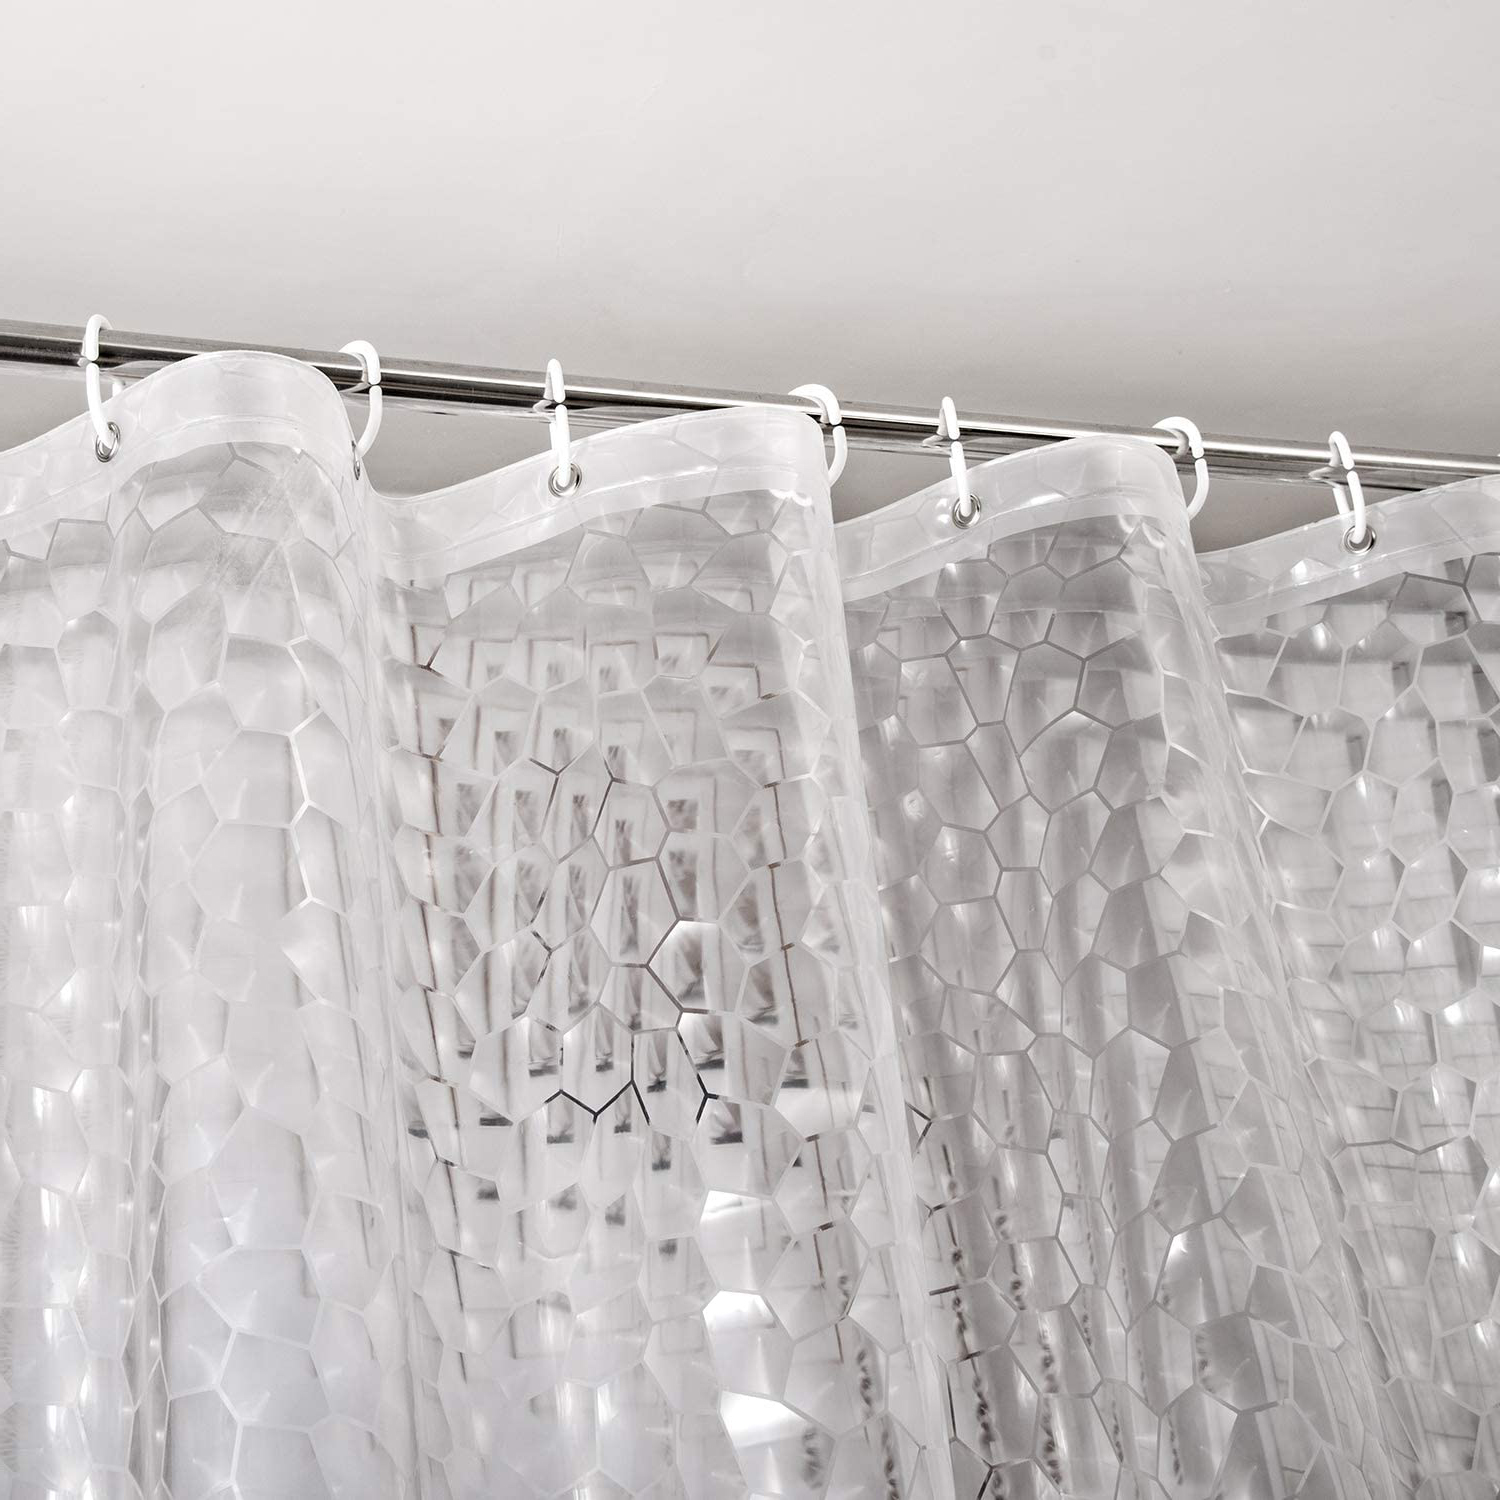 meidong eva shower curtain liner waterproof 3d water cube clear bathroom shower curtains no chemical smell extra long for shower stall bathtubs